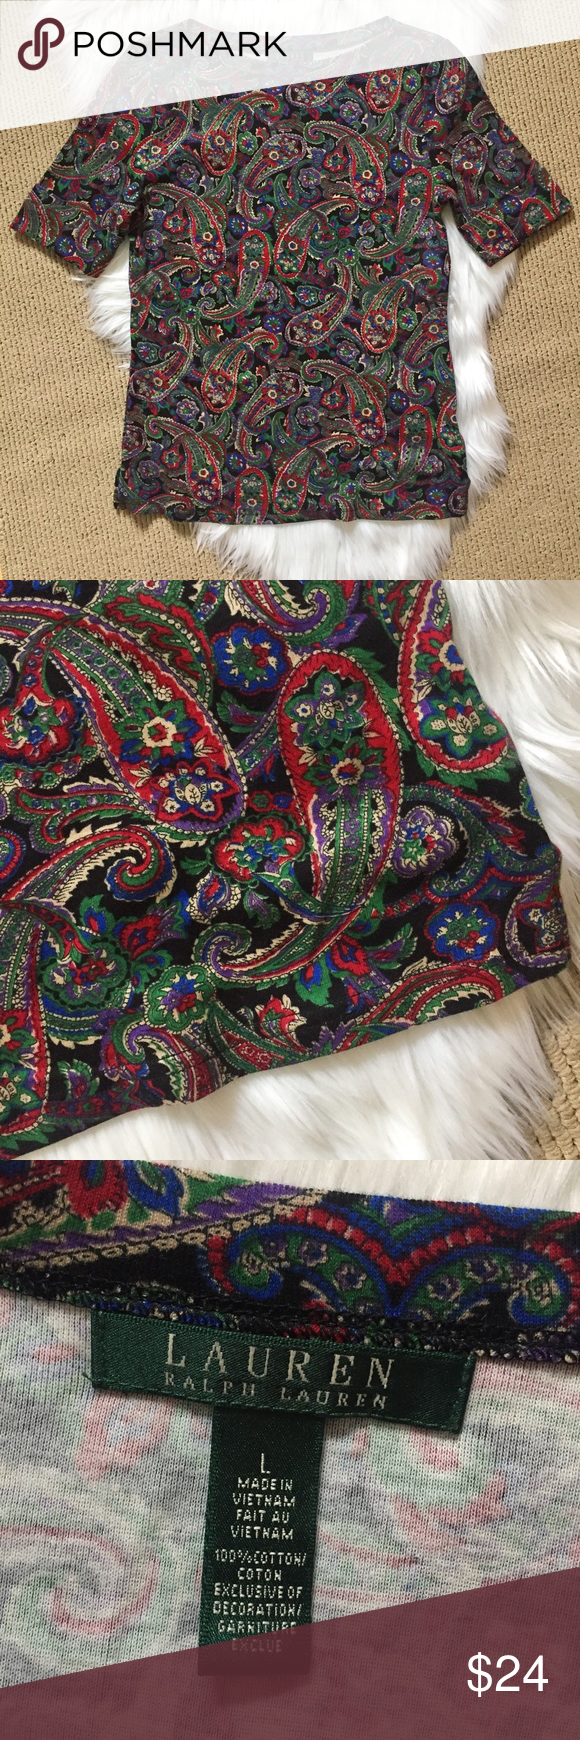 "Ralph Lauren Paisley Top Paisley print tee with shorter 3/4 cuffed sleeves and a slight boat neck. Classic fit and style! Green, black, red, blue, beige, and purple▪️Size Large (fitted) 17.5"" armpit to armpit flat across and 25"" shoulder to hem. ▪️100% cotton. In great condition- never worn! Lauren Ralph Lauren Tops Tees - Short Sleeve"